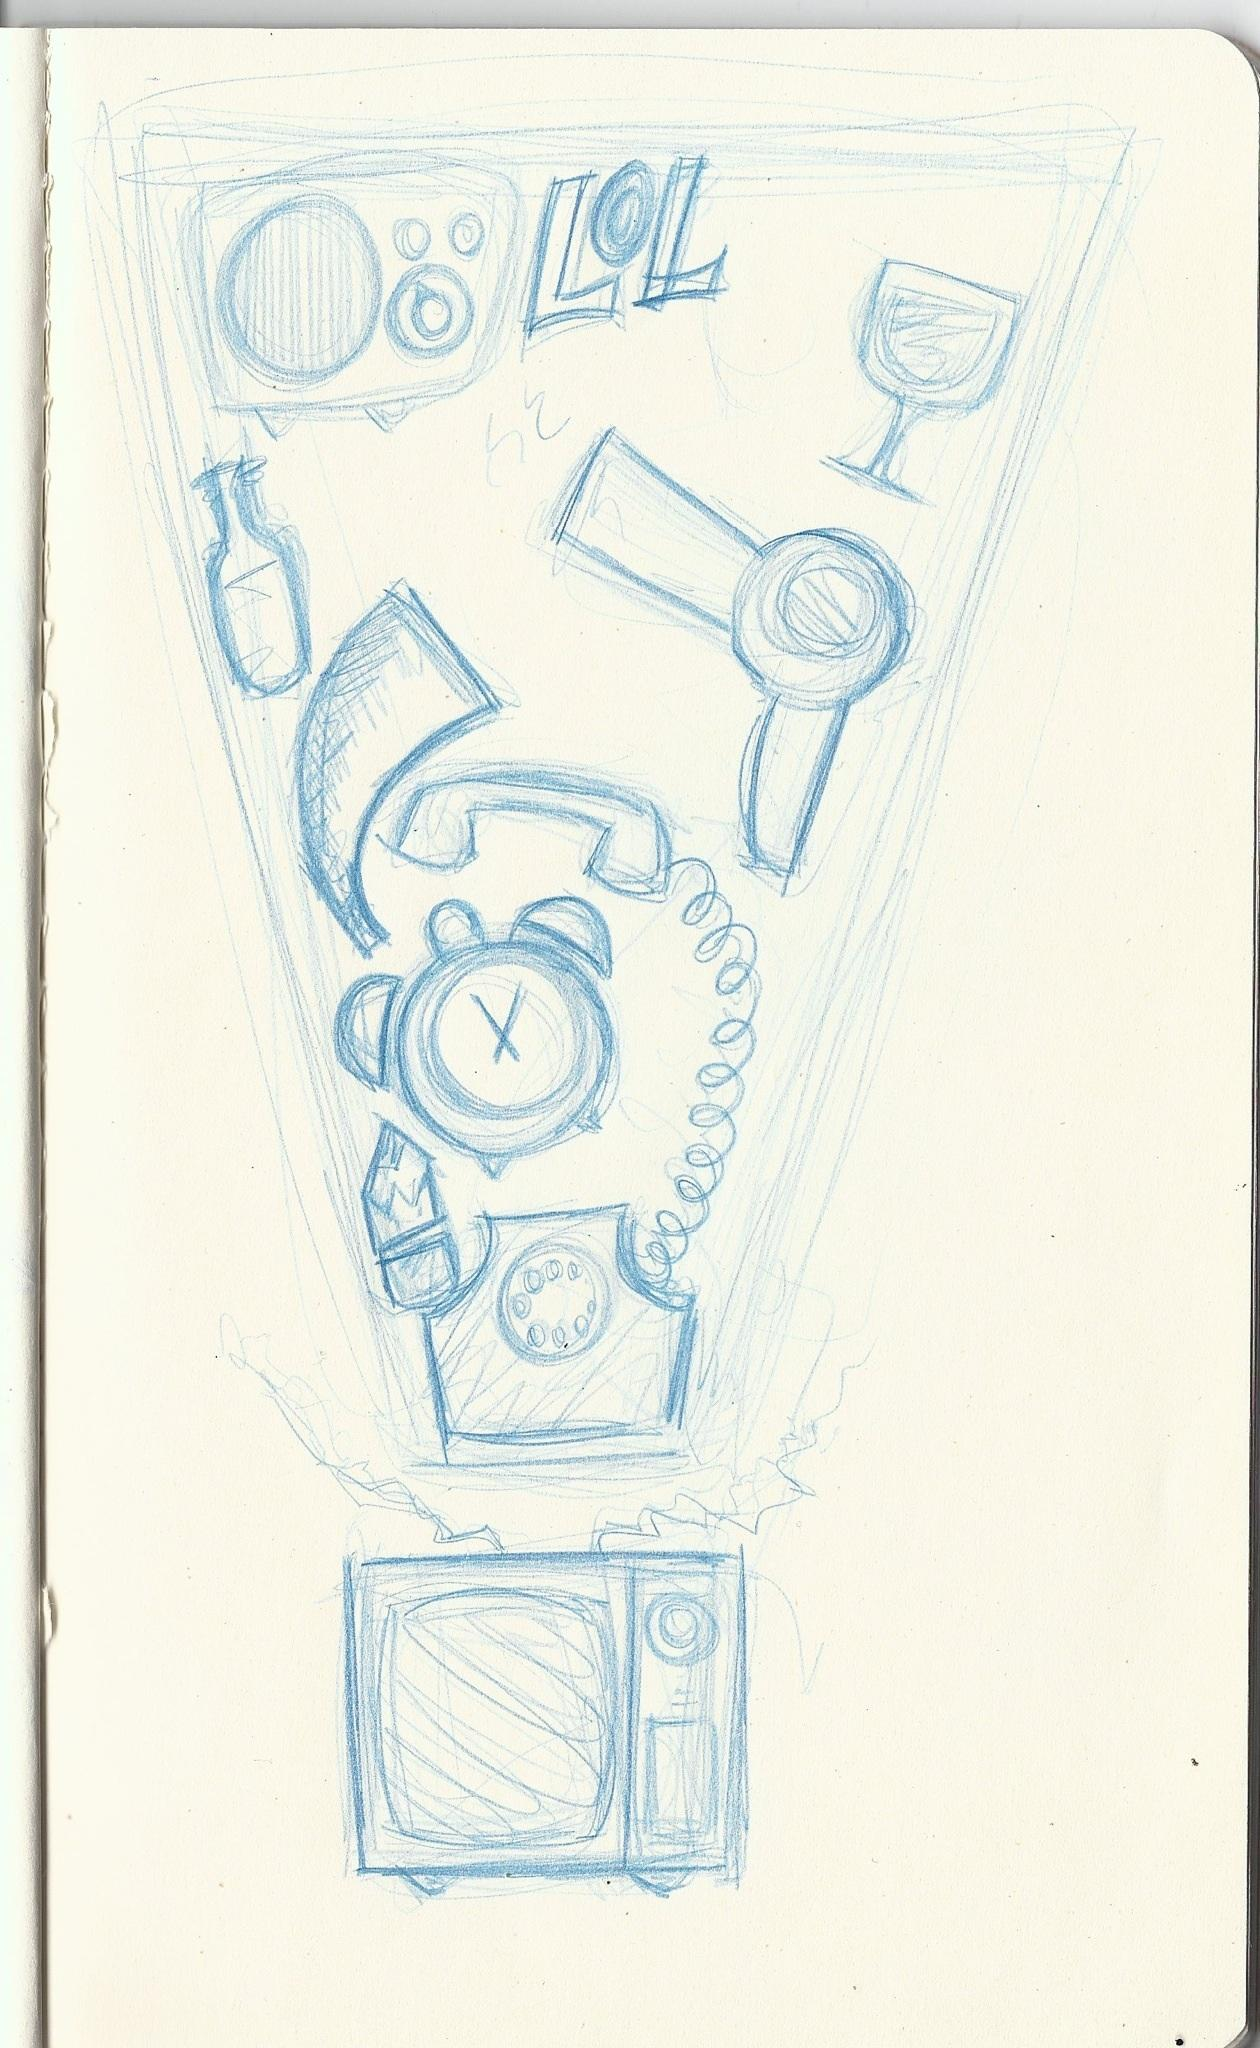 Exclamation Point - image 3 - student project